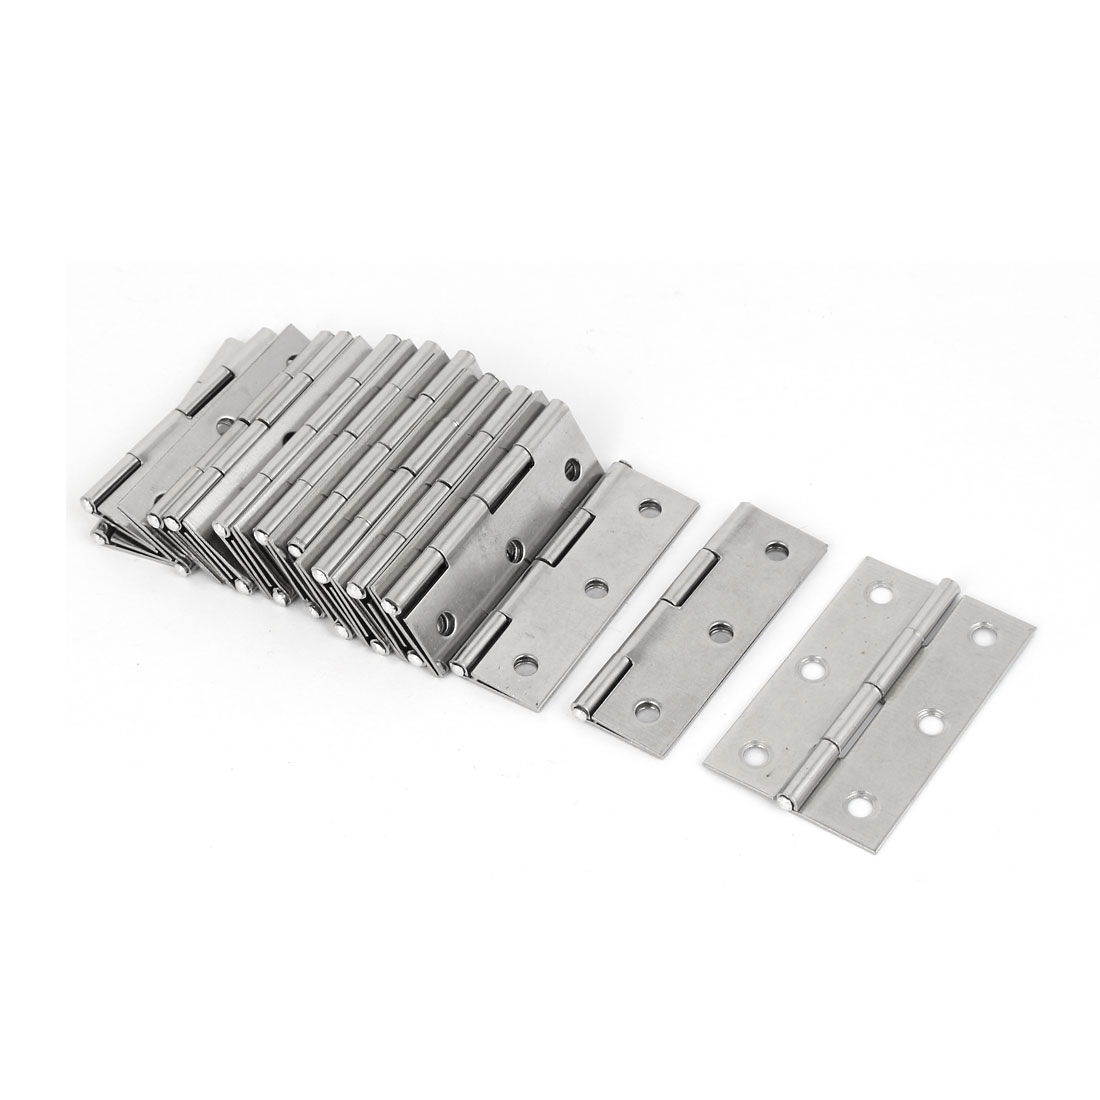 Cupboard Cabinet Stainless Steel Door Hinges 55mm Long 10pcs